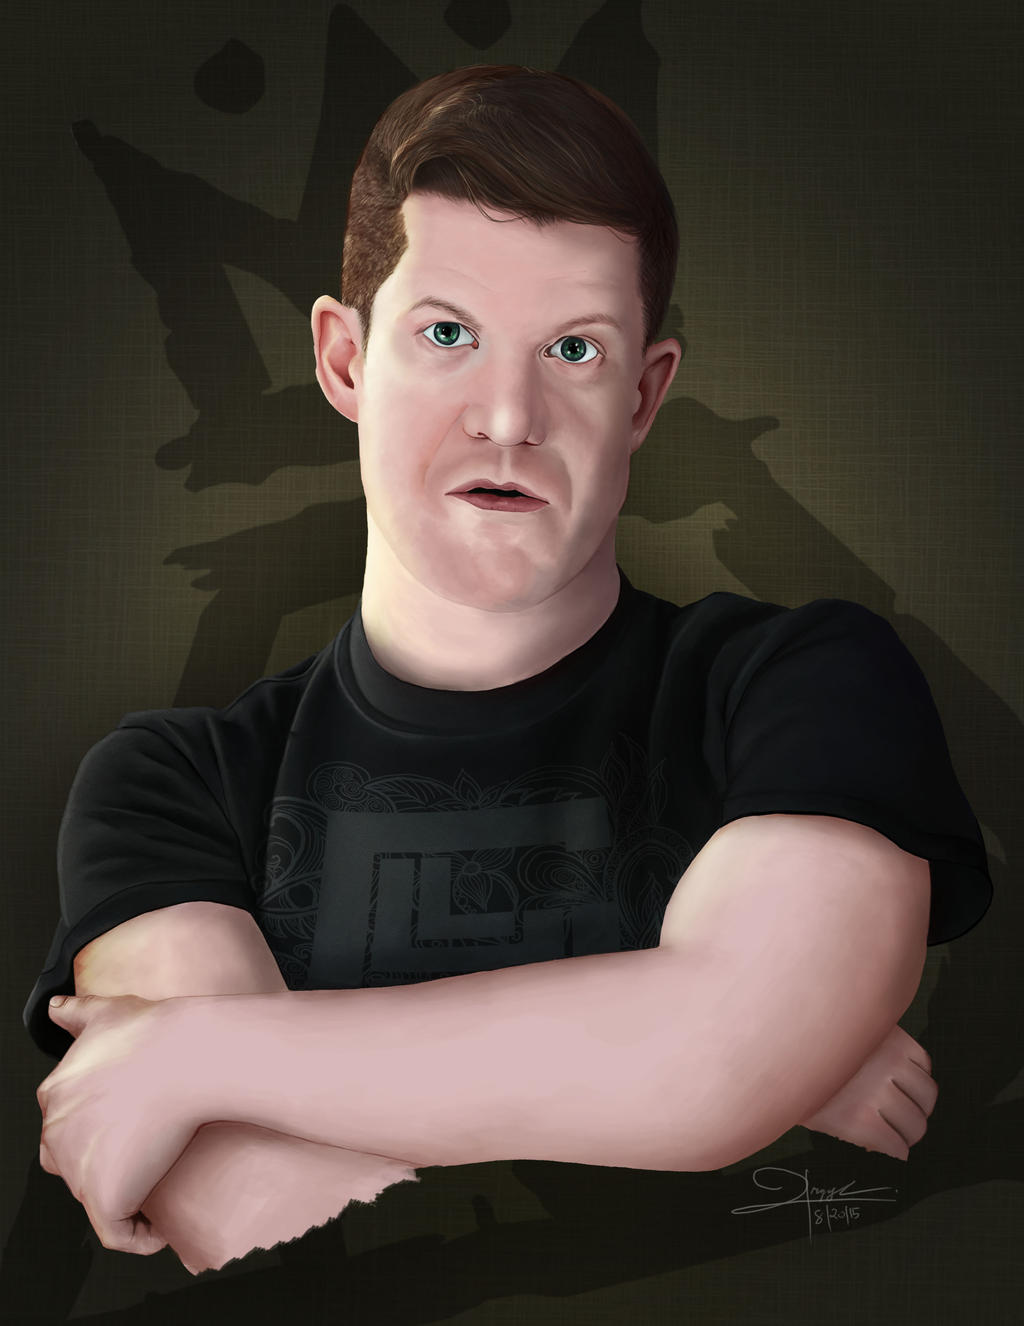 Andy Hurley Without Beard And Tattoos By Gylele On Deviantart